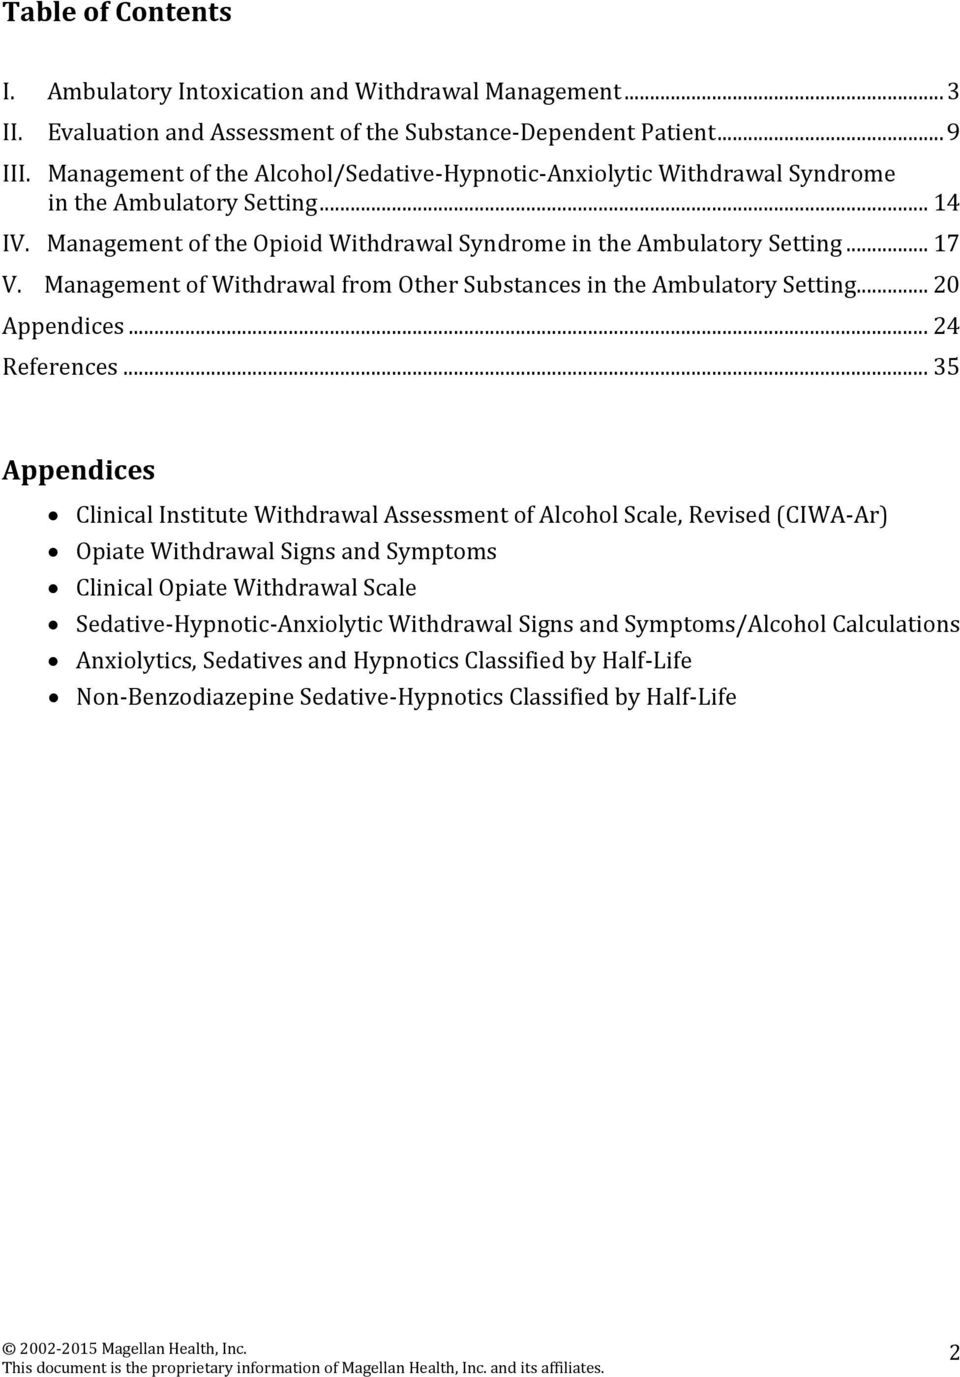 Management of Withdrawal from Other Substances in the Ambulatory Setting... 20 Appendices... 24 References.